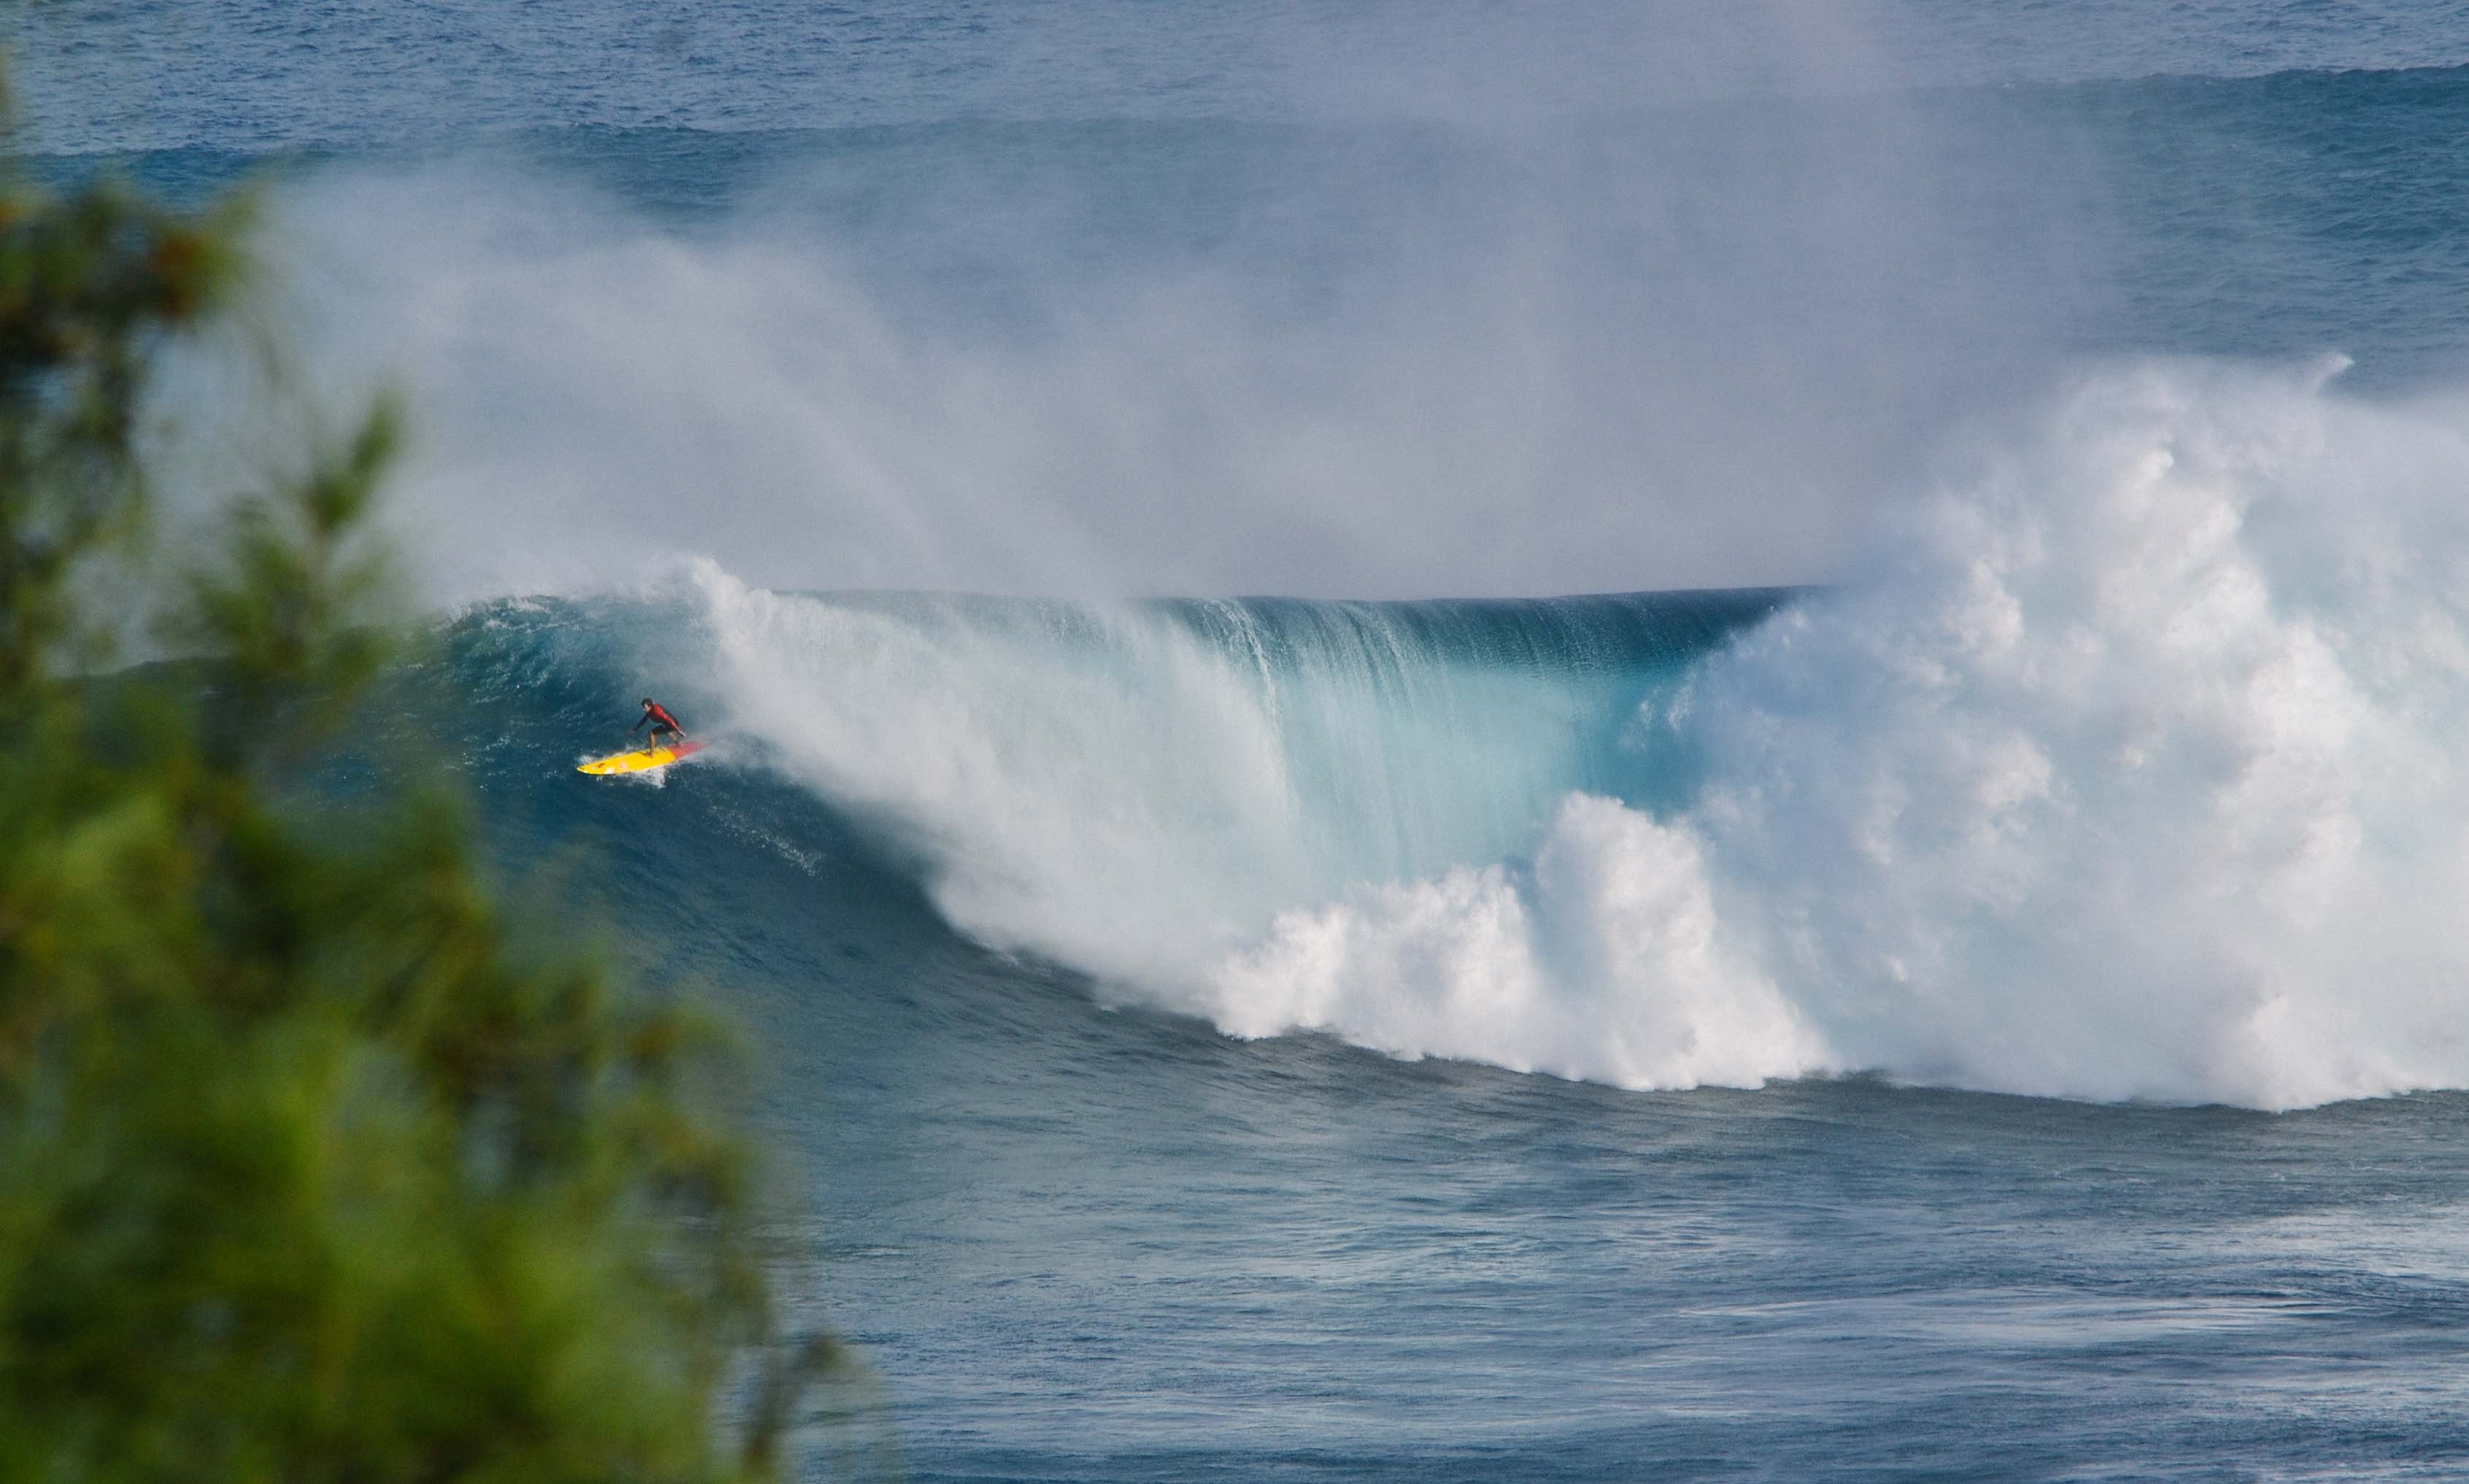 A person surfing on a yellow surfboard, catching a massive wave in Jaws